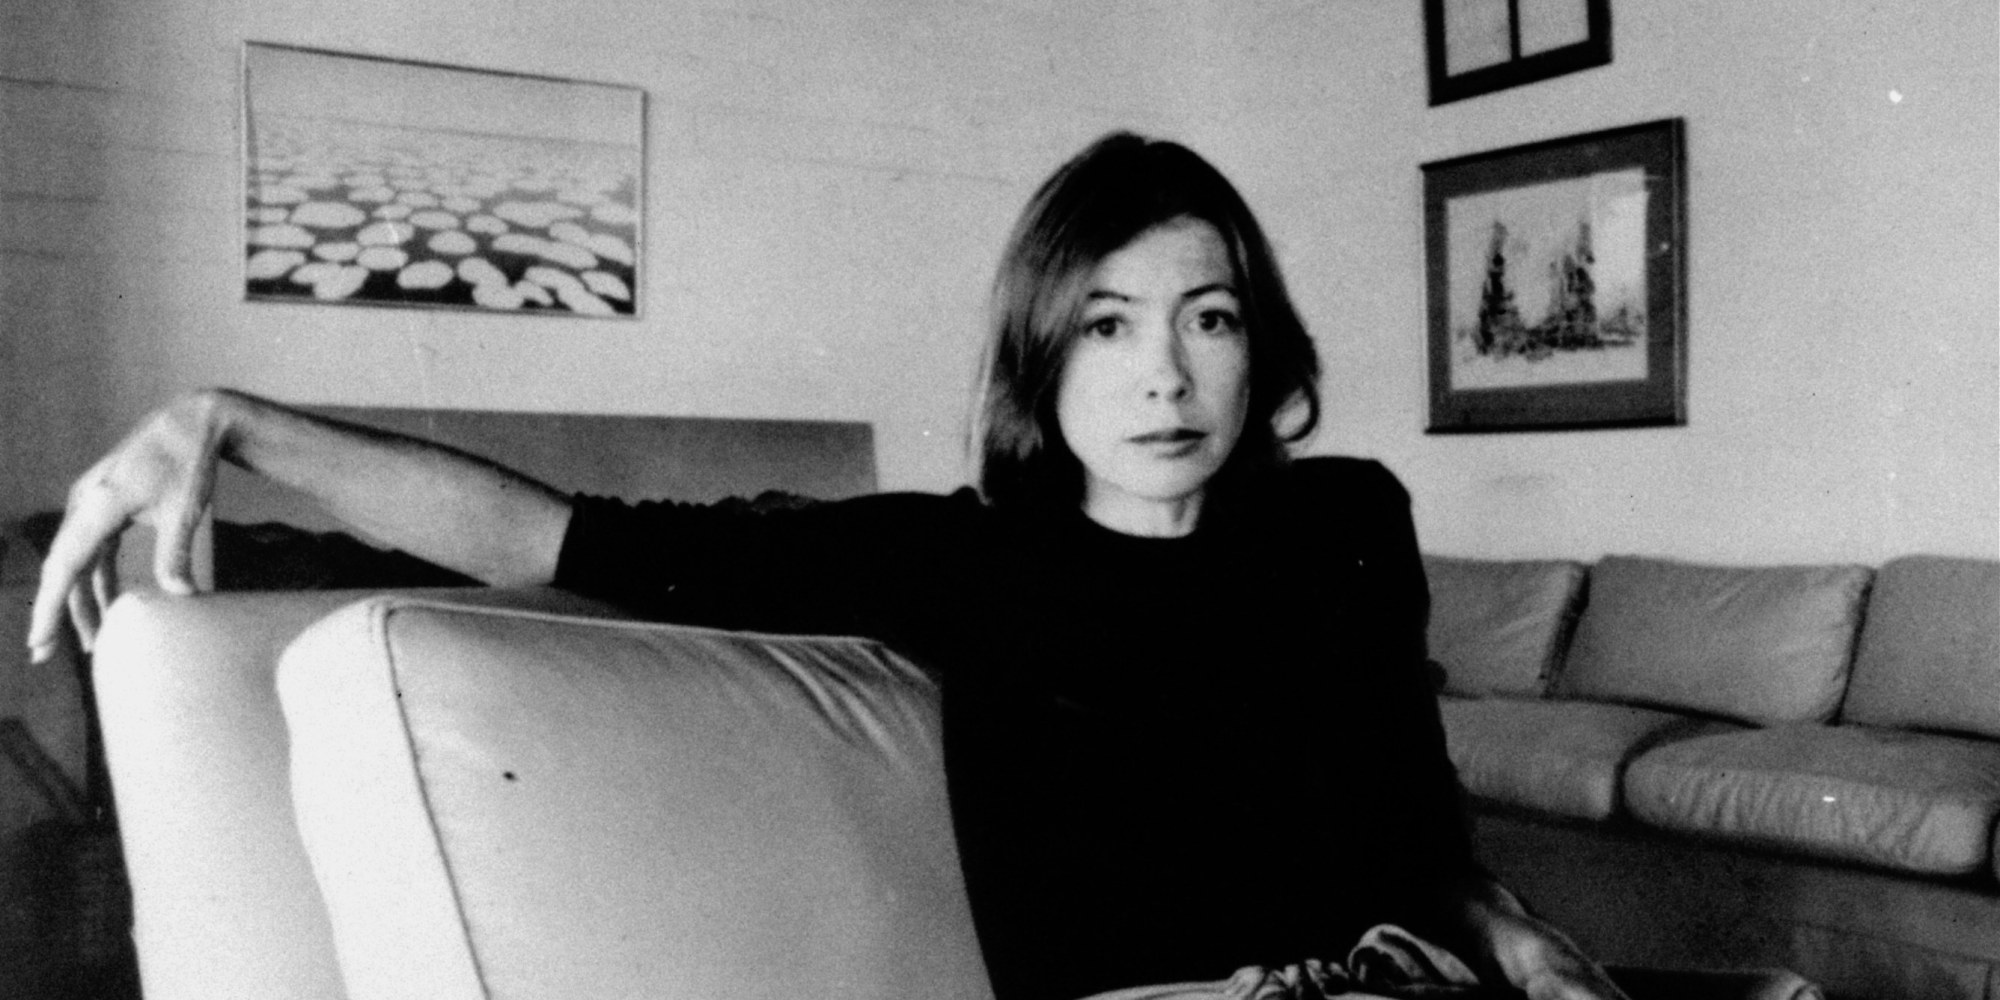 Female writer to female writer, 1978 interview with Joan Didion // DNAMAG